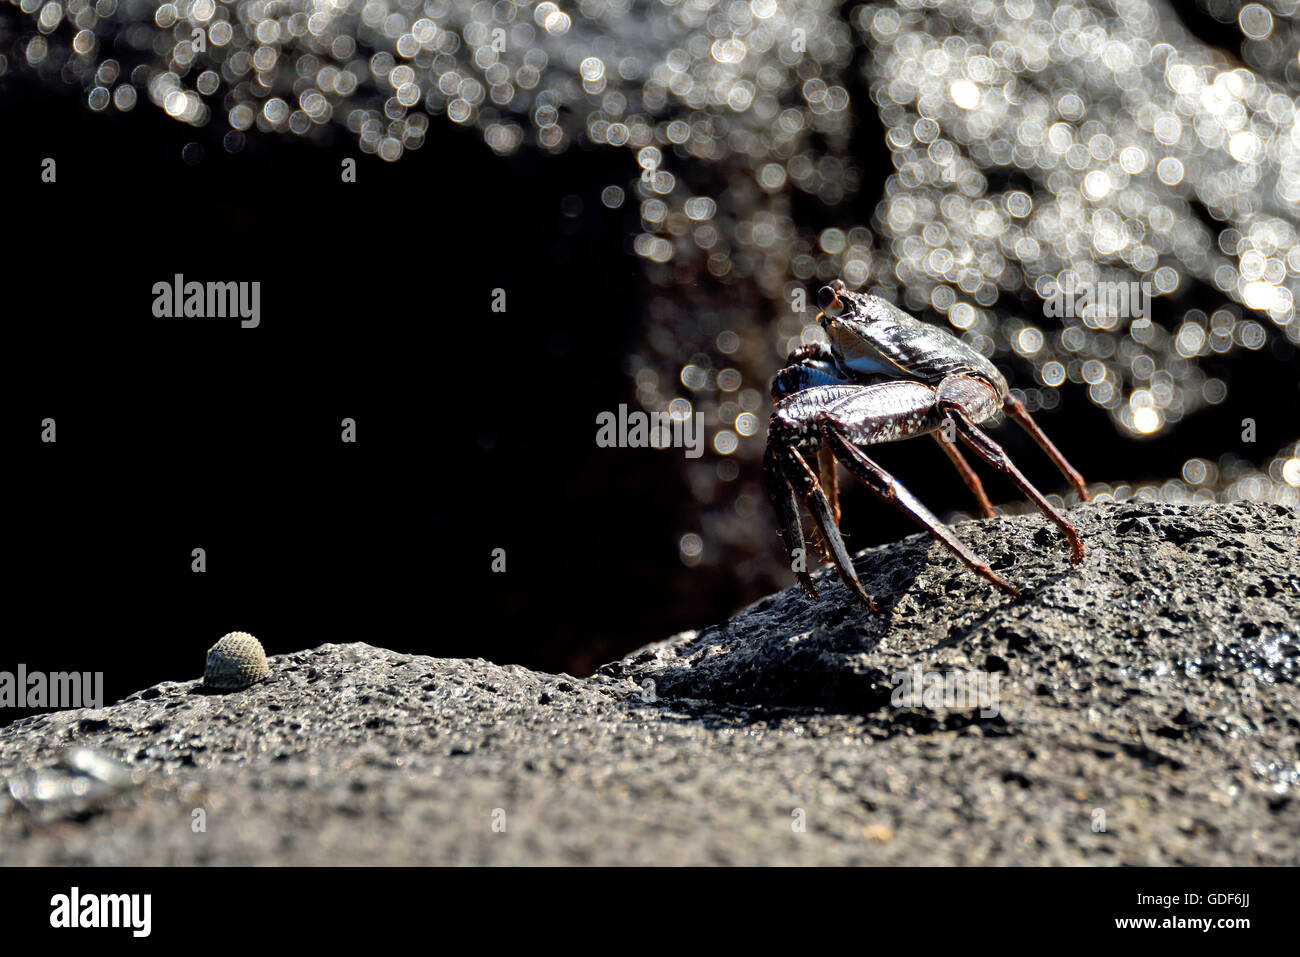 An Ascension Island Crab (Grapsus adscensionis) on a rock on a beach on Ascension Island Stock Photo